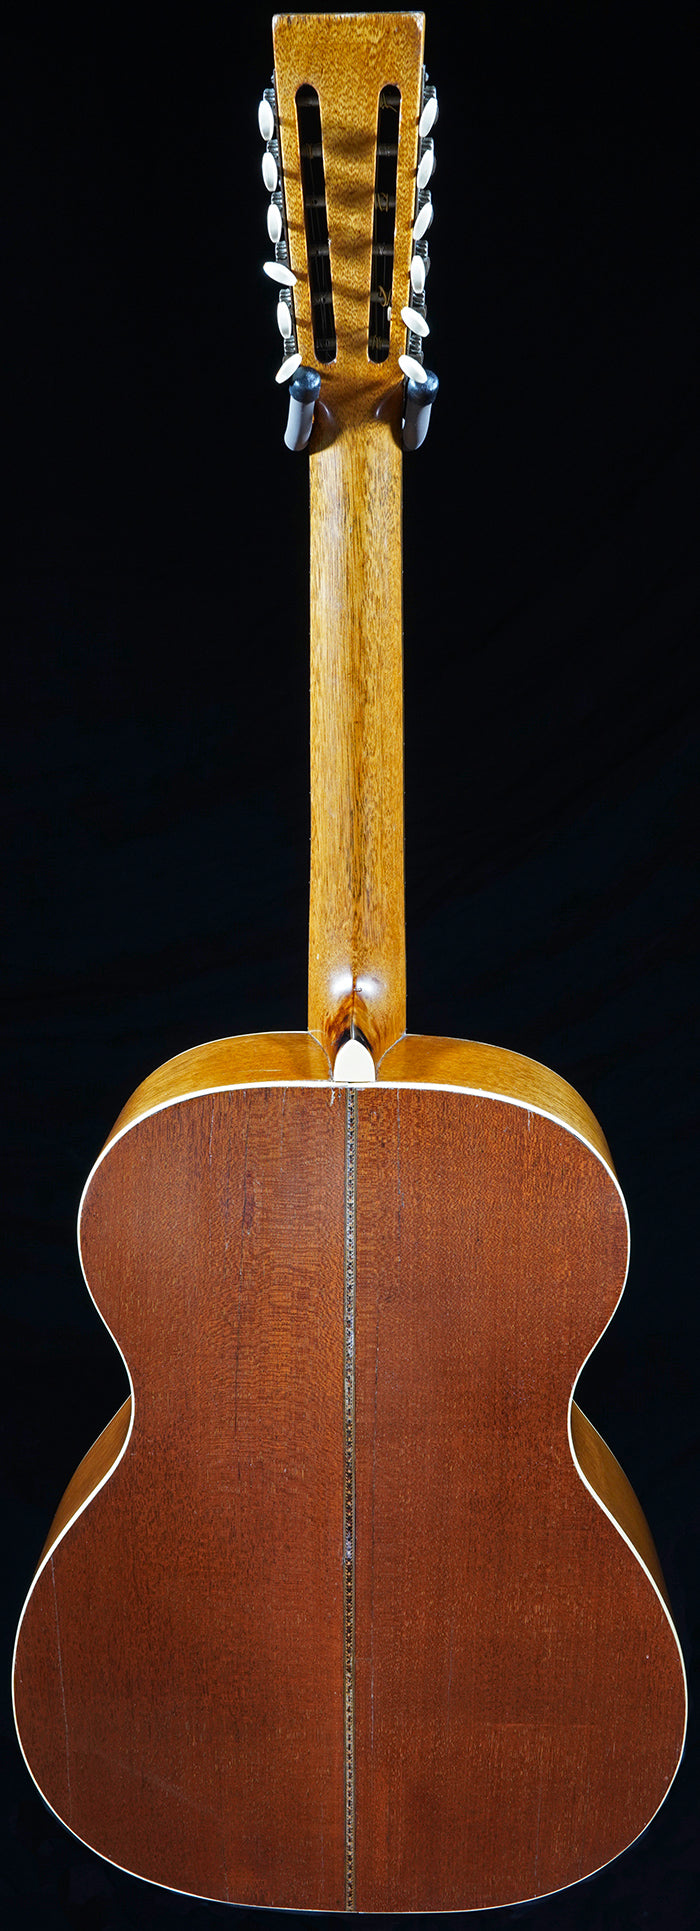 Circa 1920s Stella 12 String Auditorium (Jumbo) Model #2